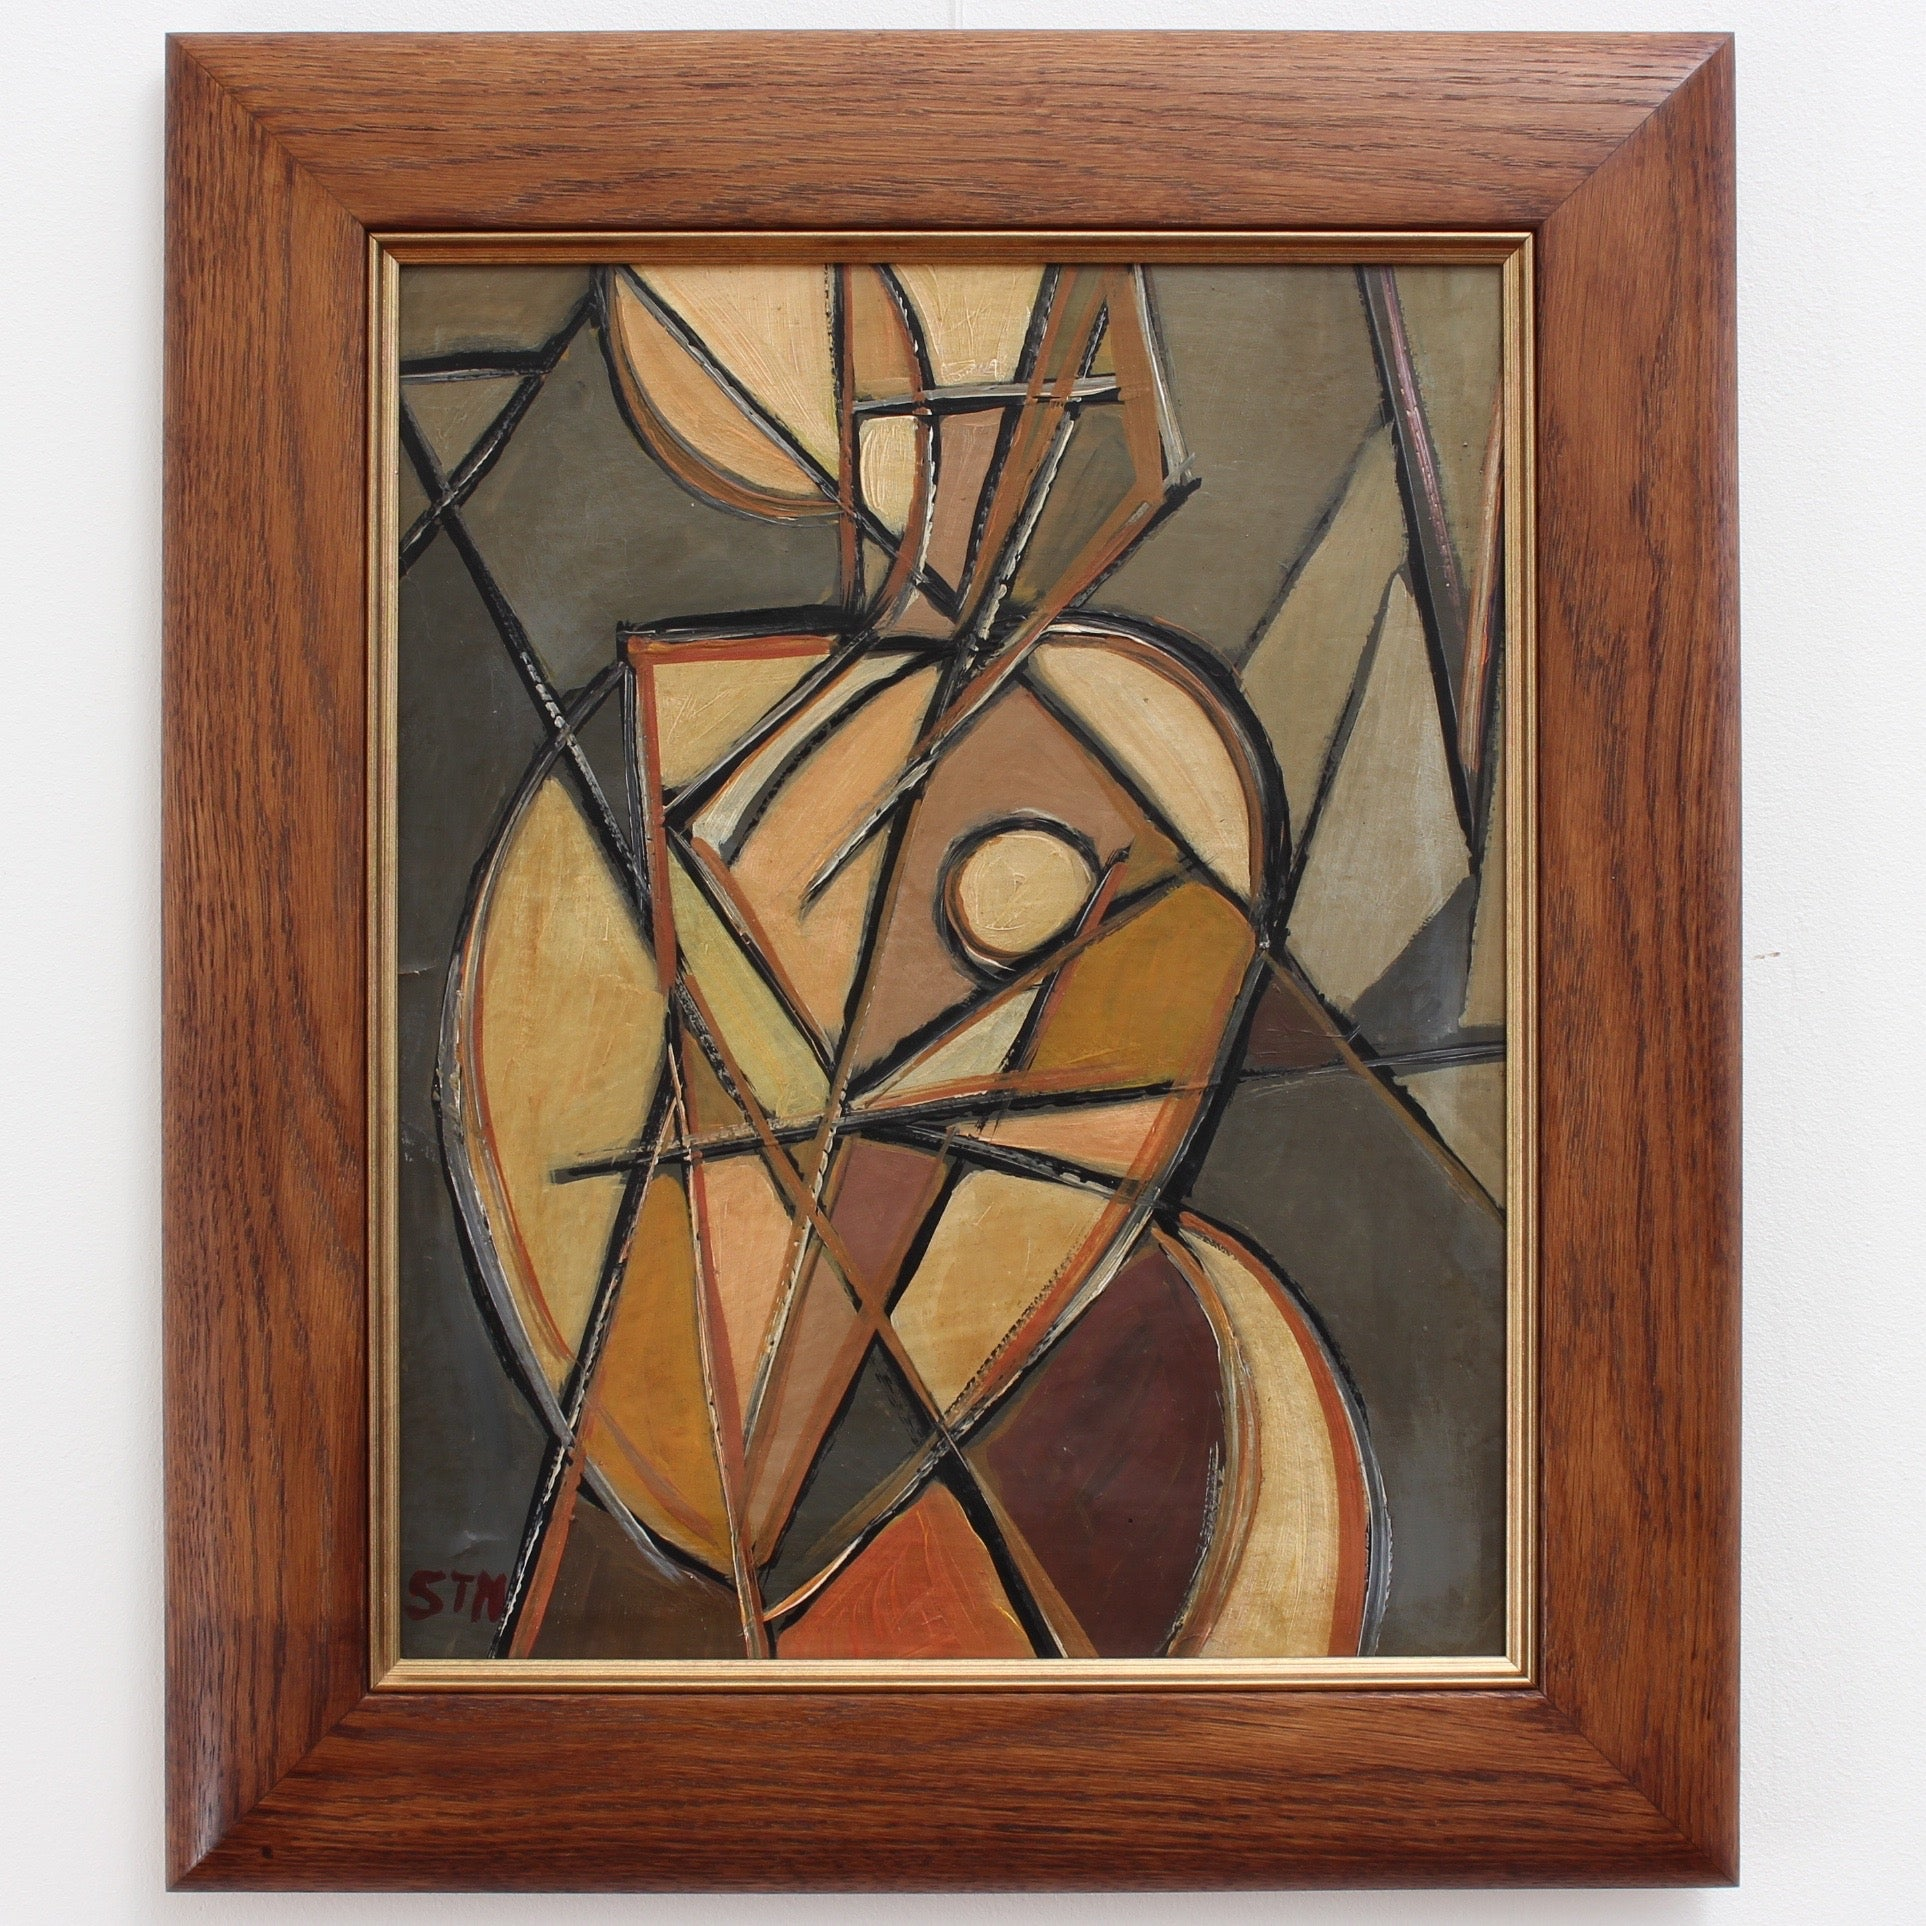 'Portrait of Woman in the Mirror' by STM (circa 1940s - 1960s)